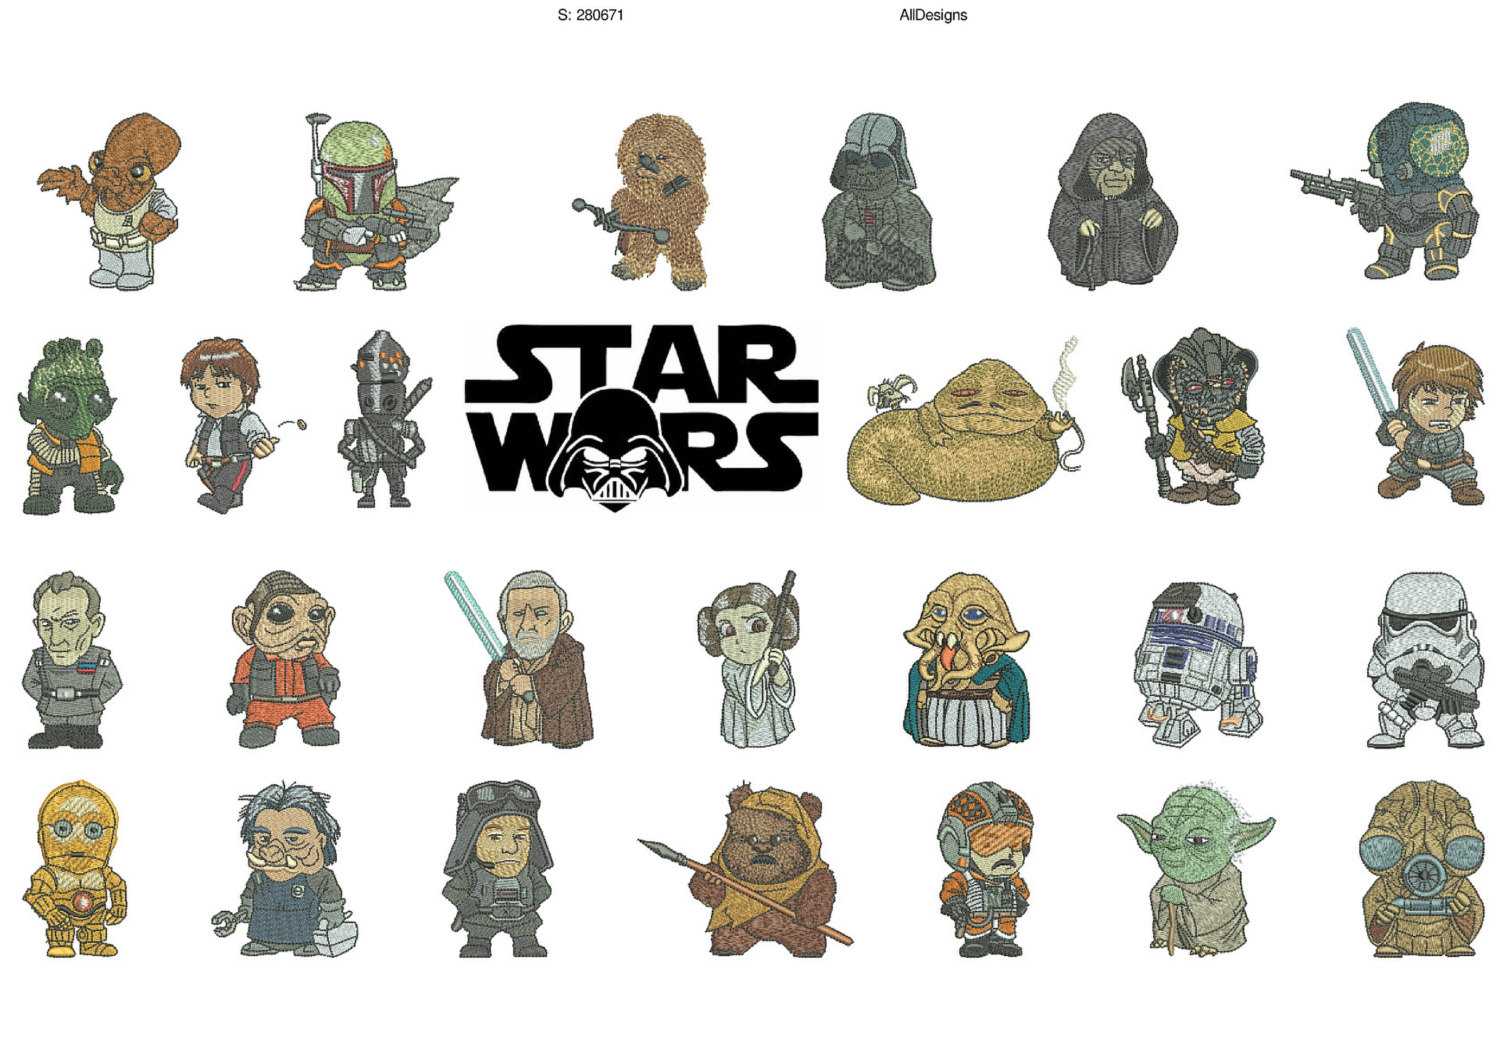 50% off - Star Wars machine embroidery designs for 4x4in hoop - Starwars 26 characters -  re-sizable with a free downloadable utility.